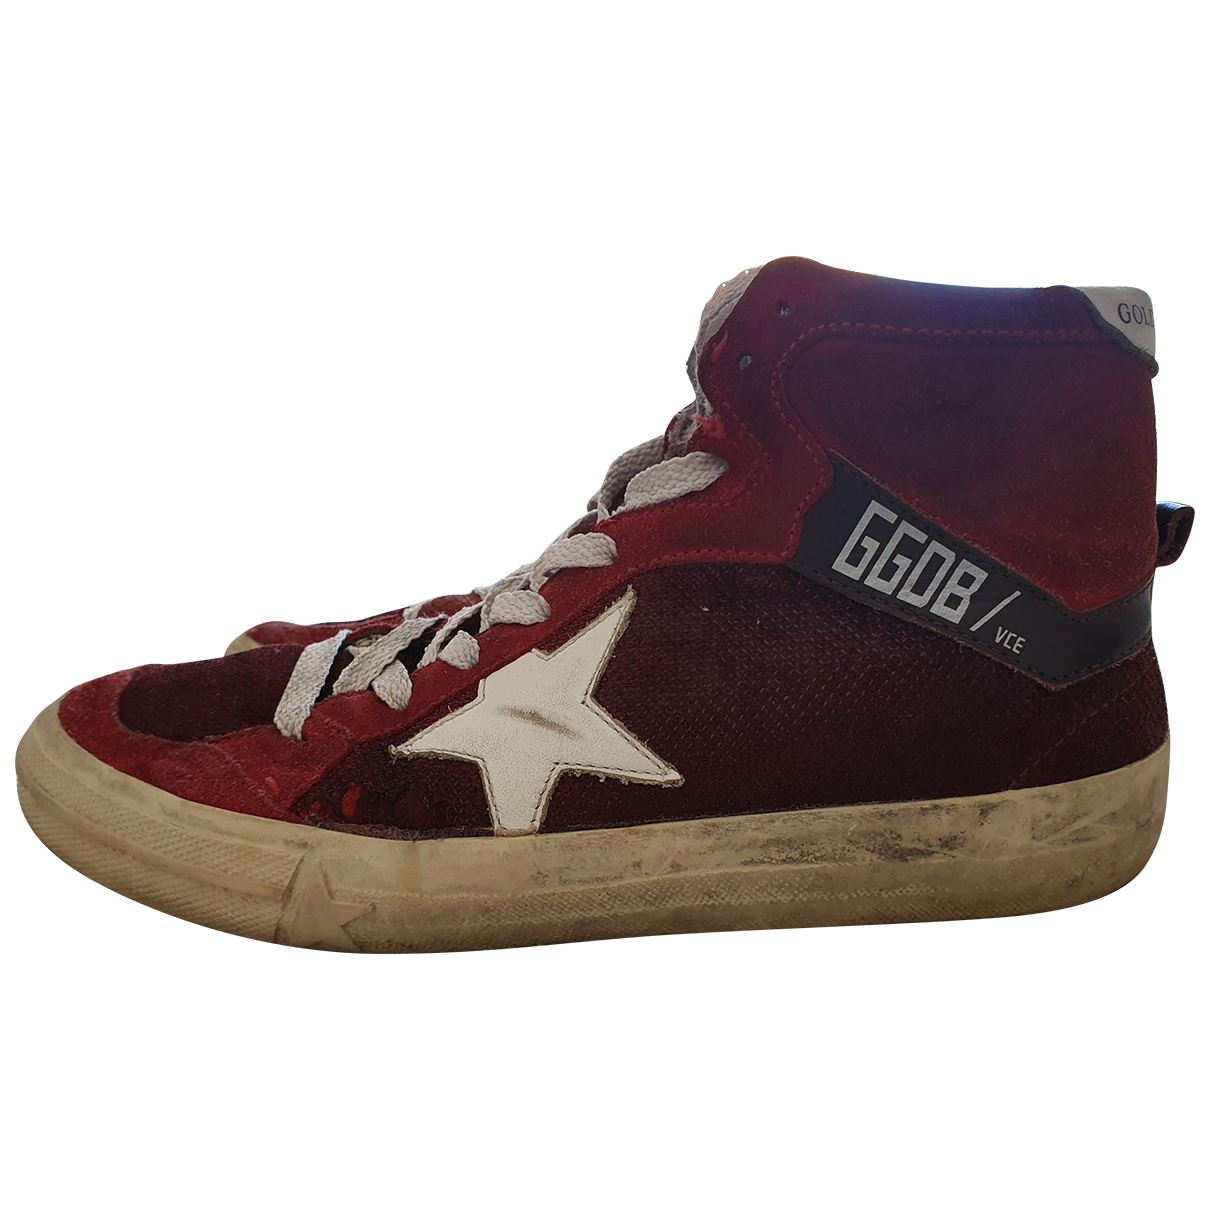 Golden Goose 2.12 Red Leather Trainers for Women 37 EU